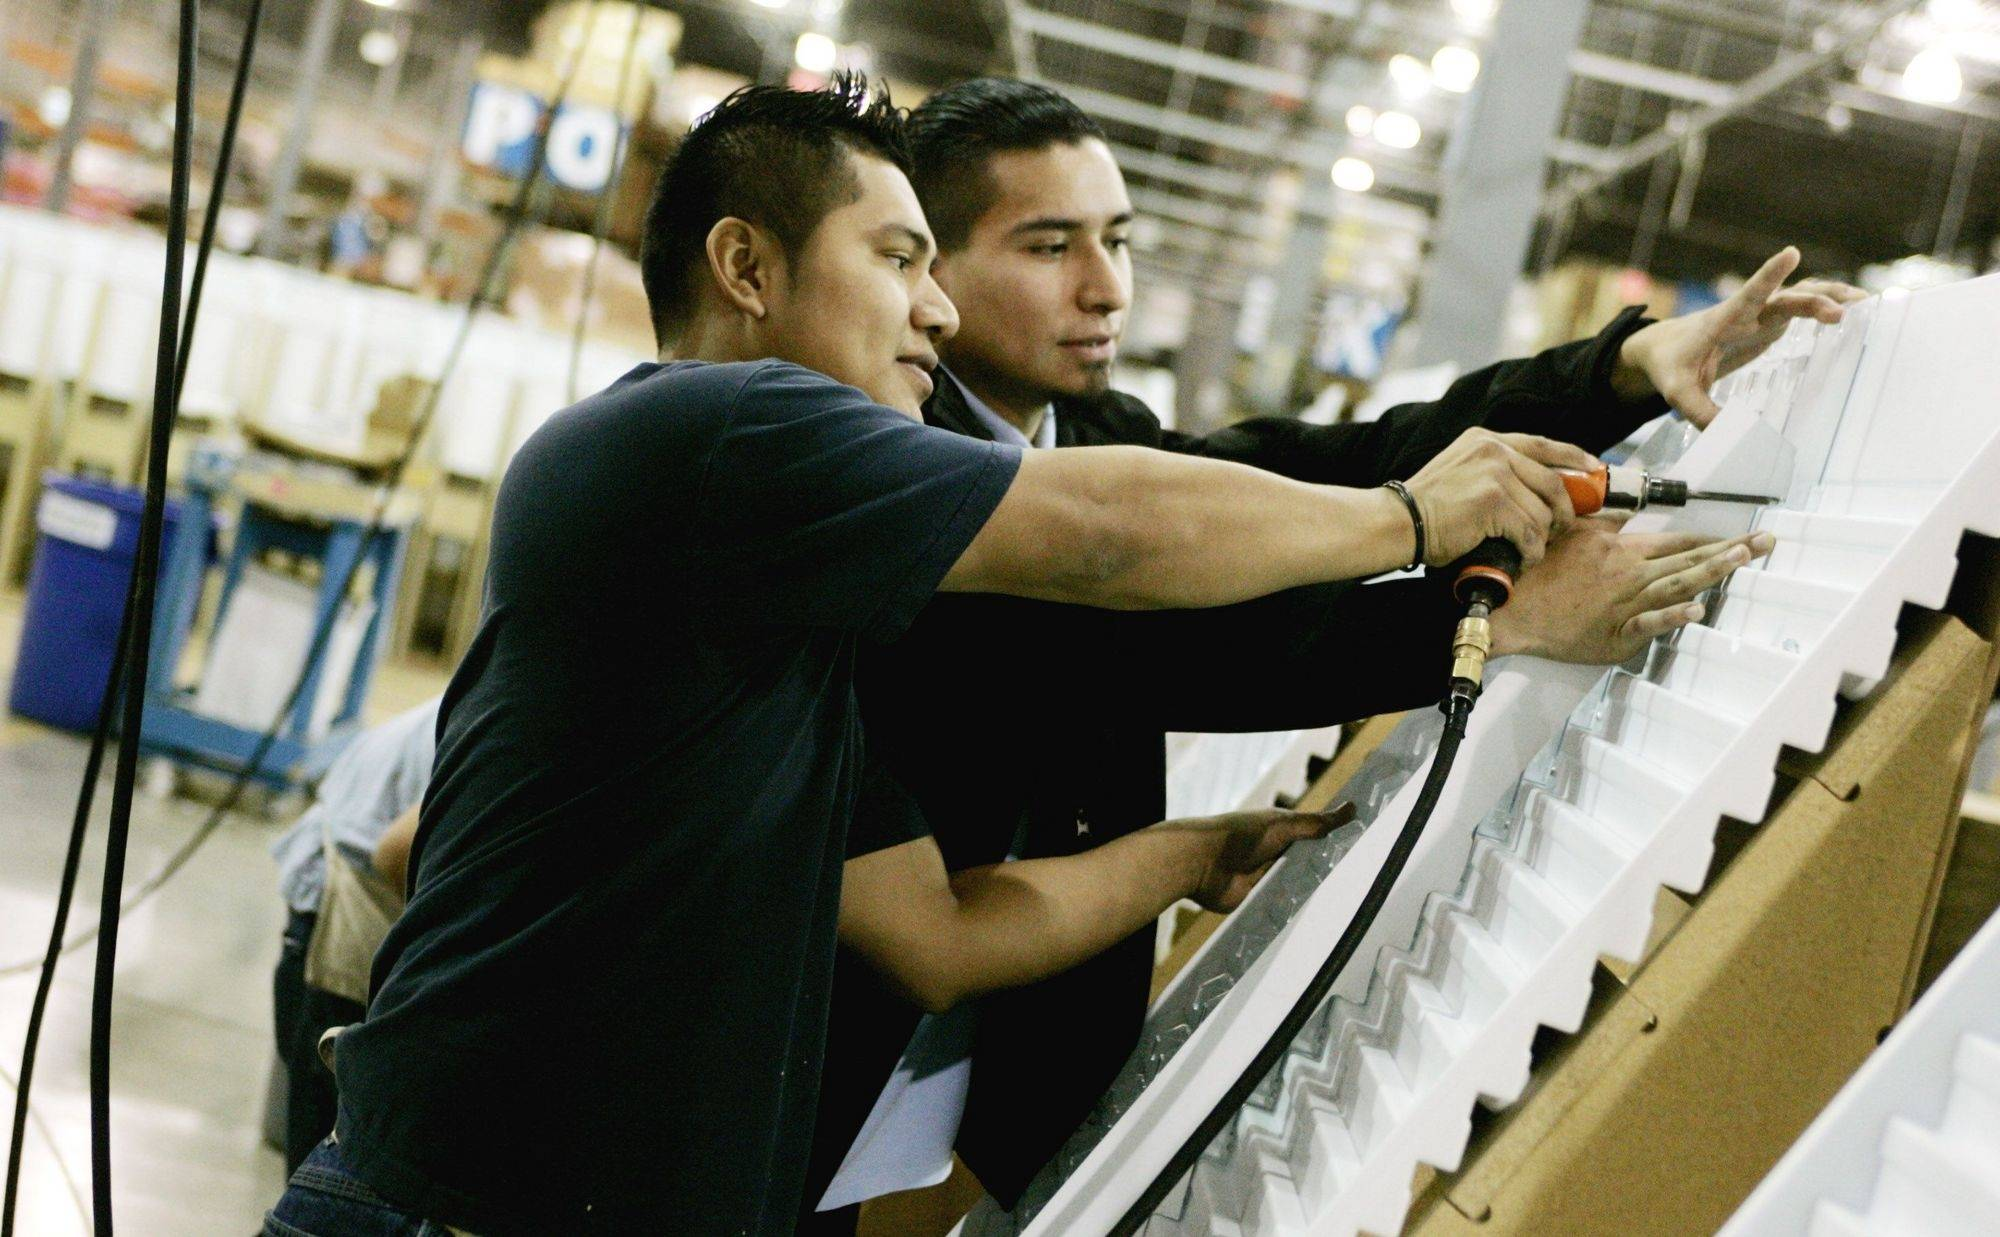 Eric Rangel, right, works with Luis Mendez, left, at Niven Marketing Group in Carol Stream.